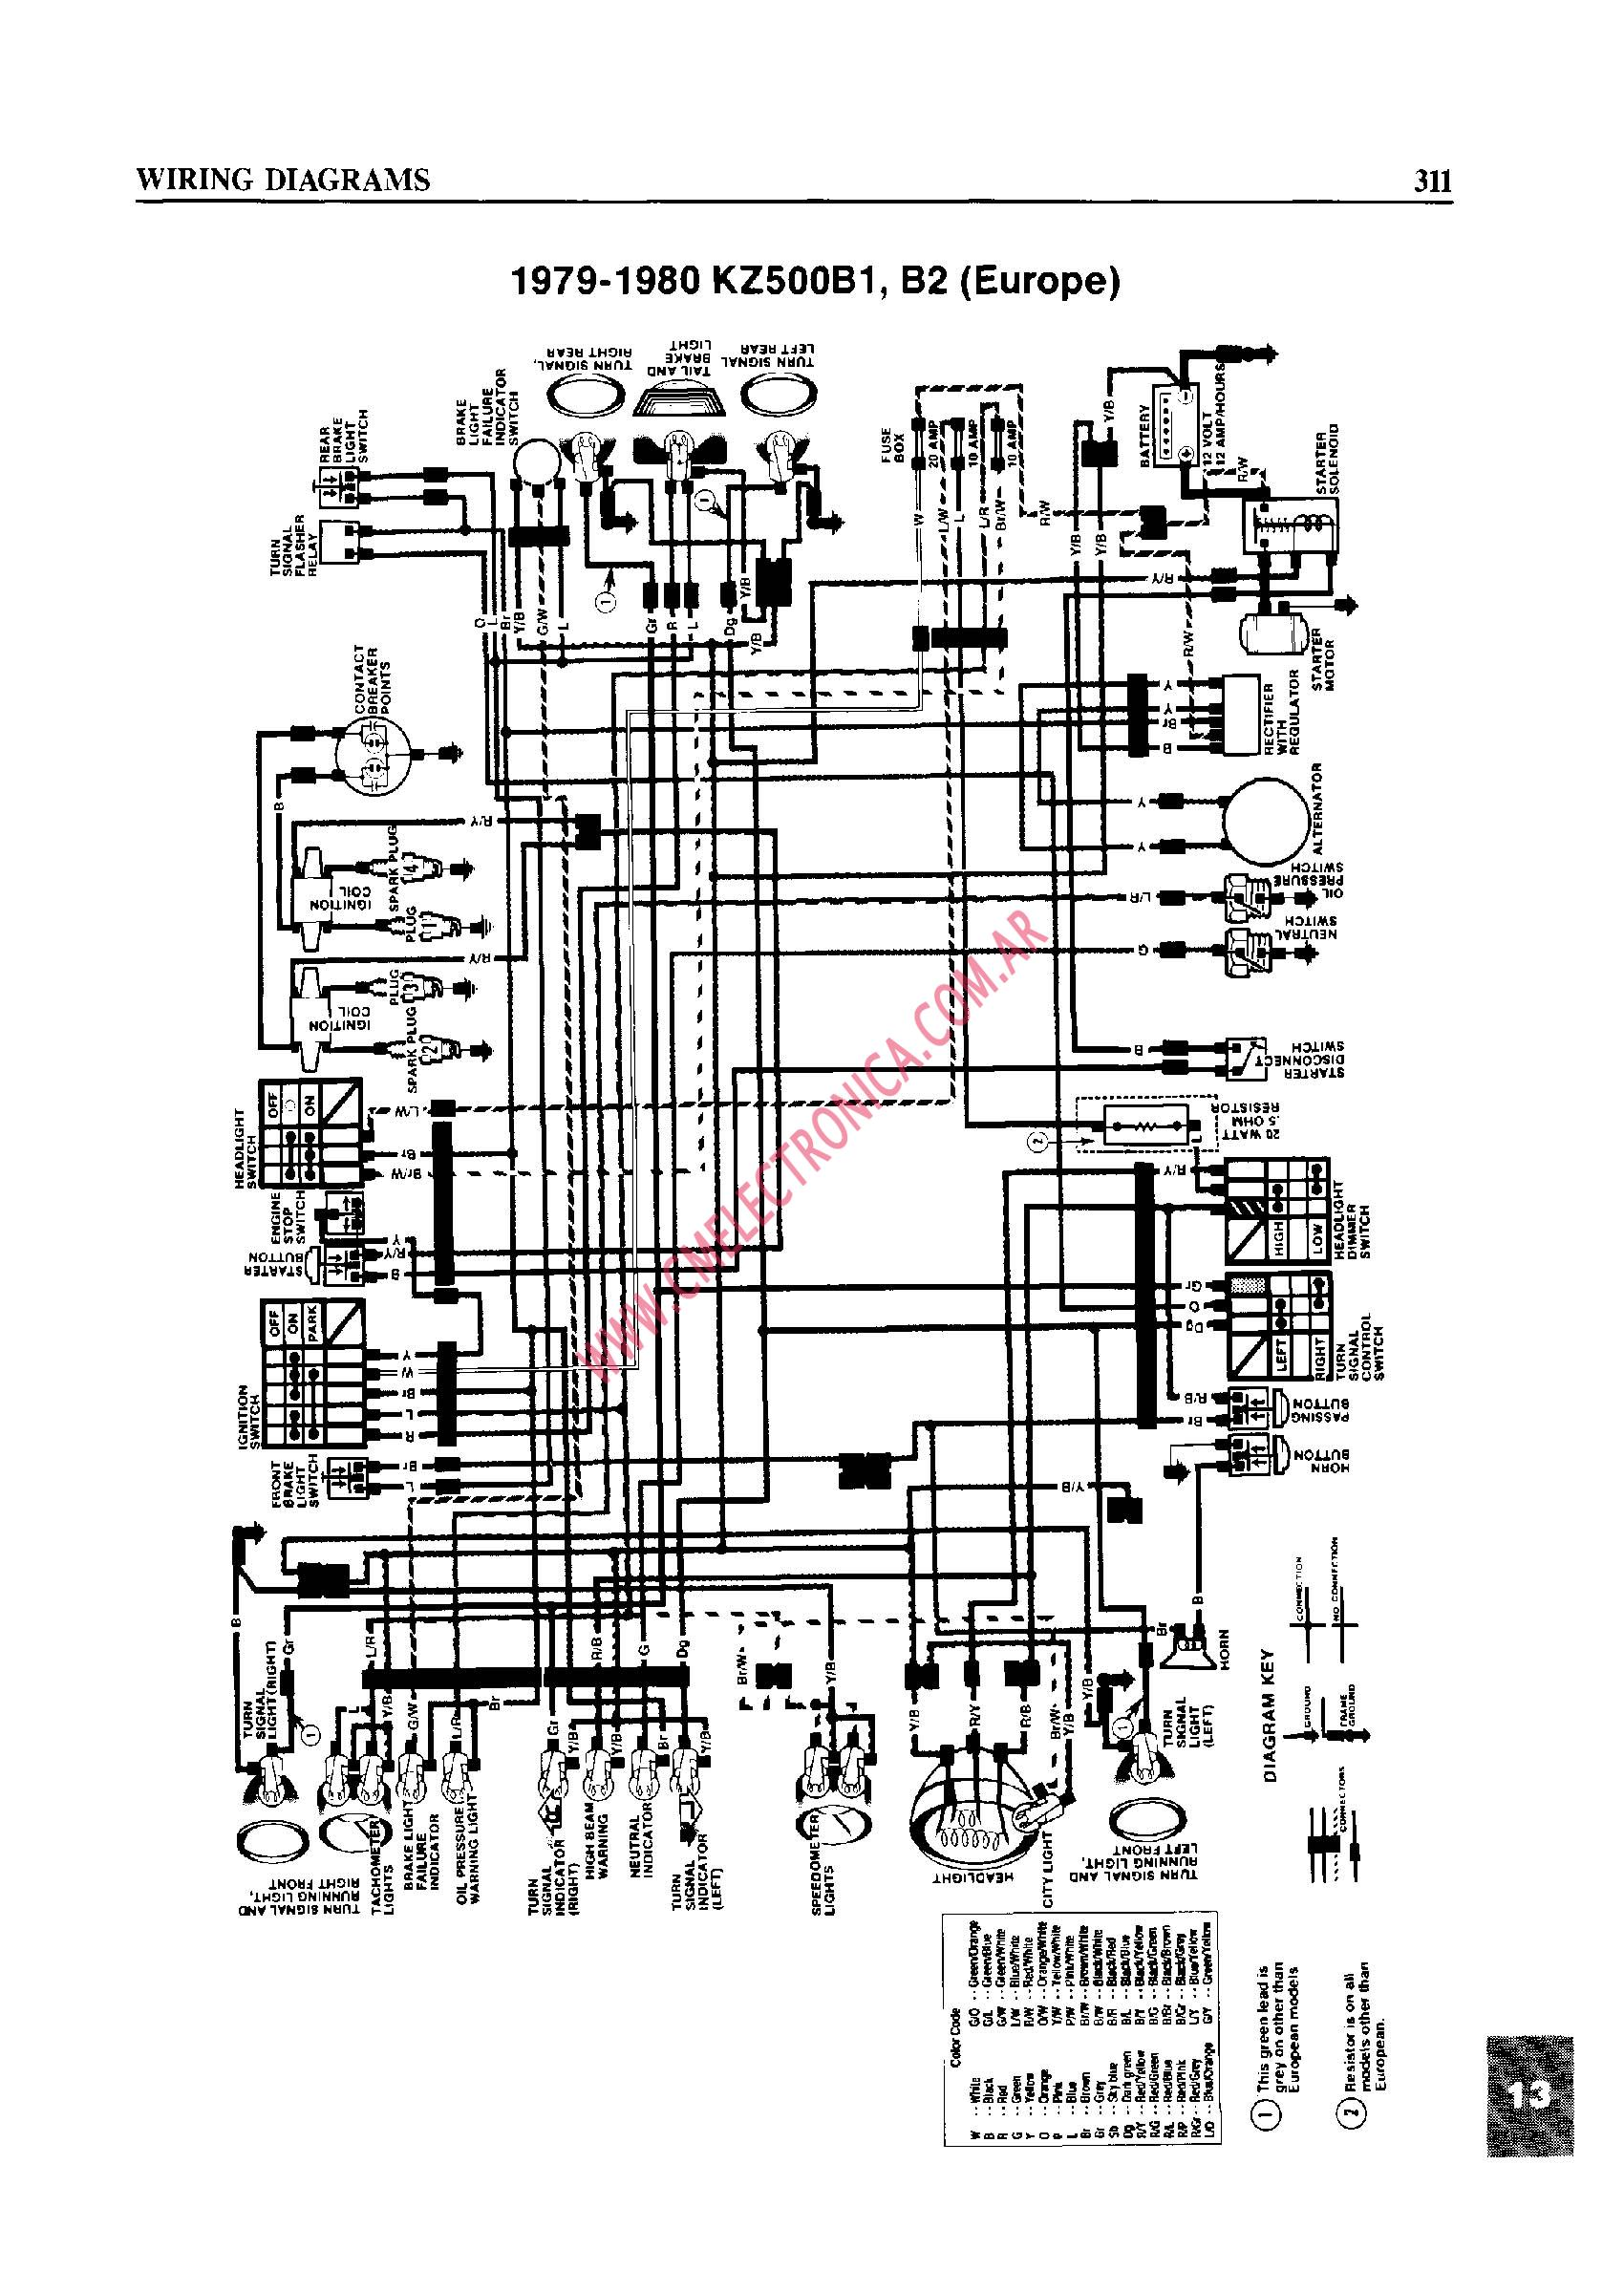 2003 Honda Cbr600f4i Wiring Diagram Cr85r Wiring Diagram